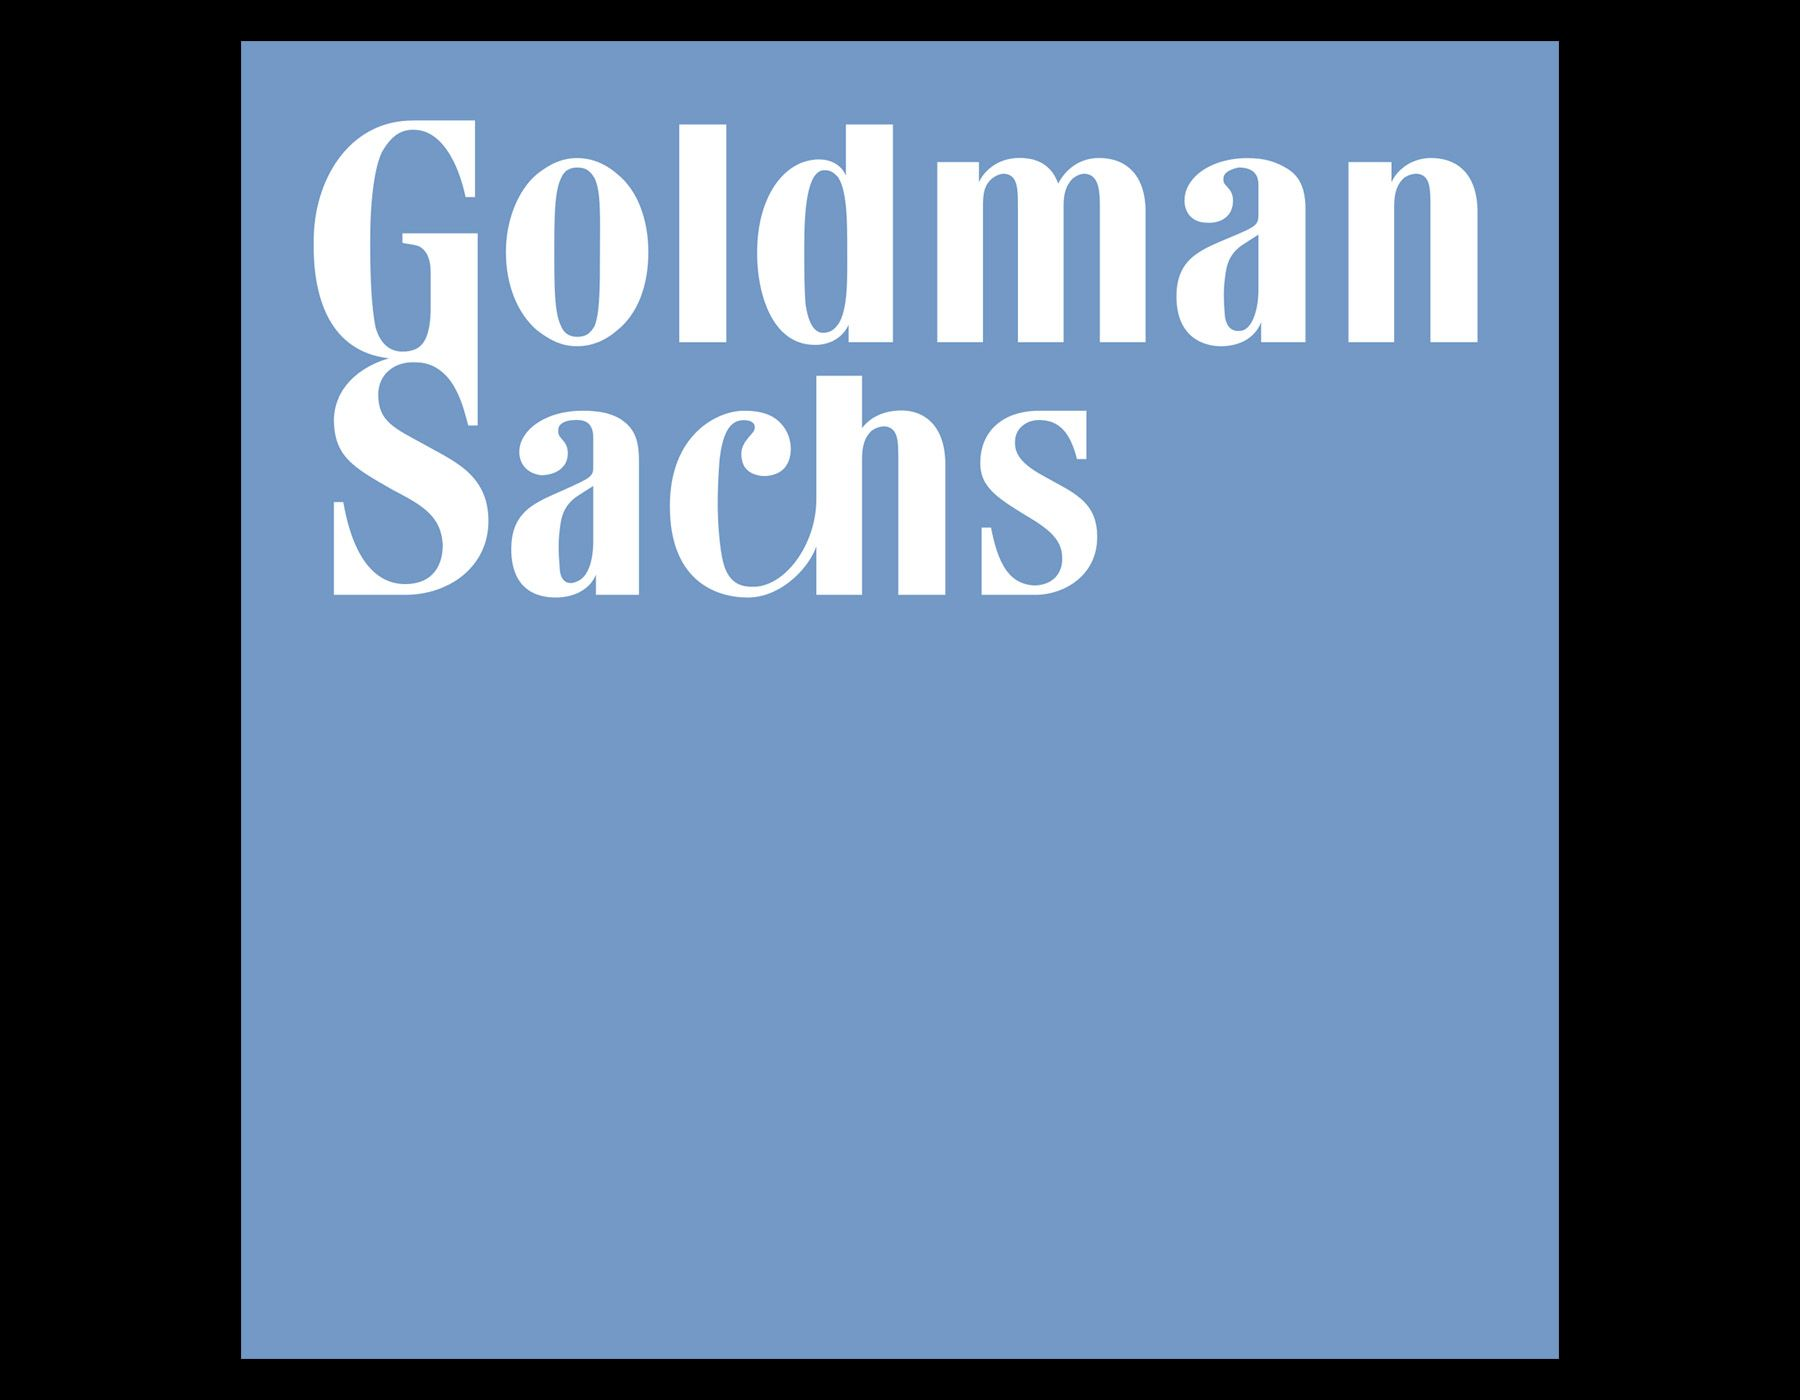 Goldman Sachs Logo - Goldman Sachs Logo, Goldman Sachs Symbol Meaning, History and Evolution